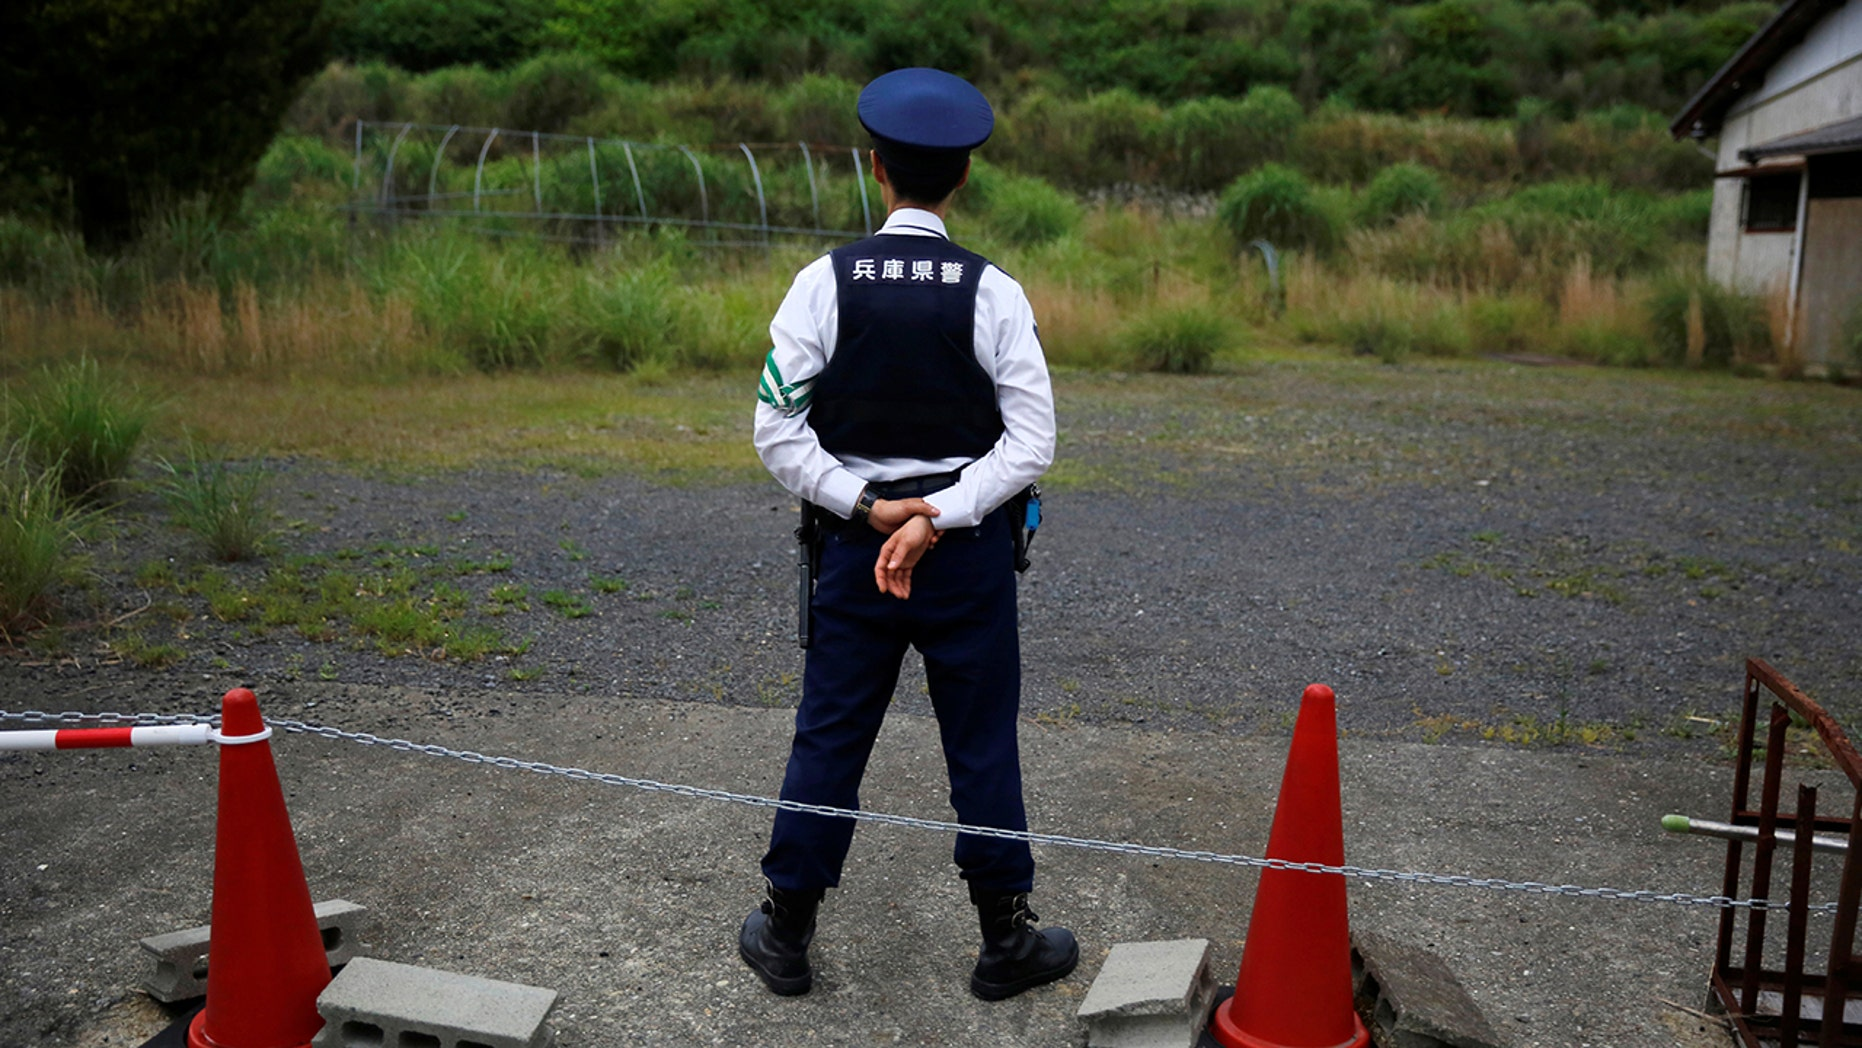 A murder investigation is underway in southern Japan after the bodies of six members of the same family were found with knife cuts inside a remote farmhouse. REUTERS/Carlos Barria